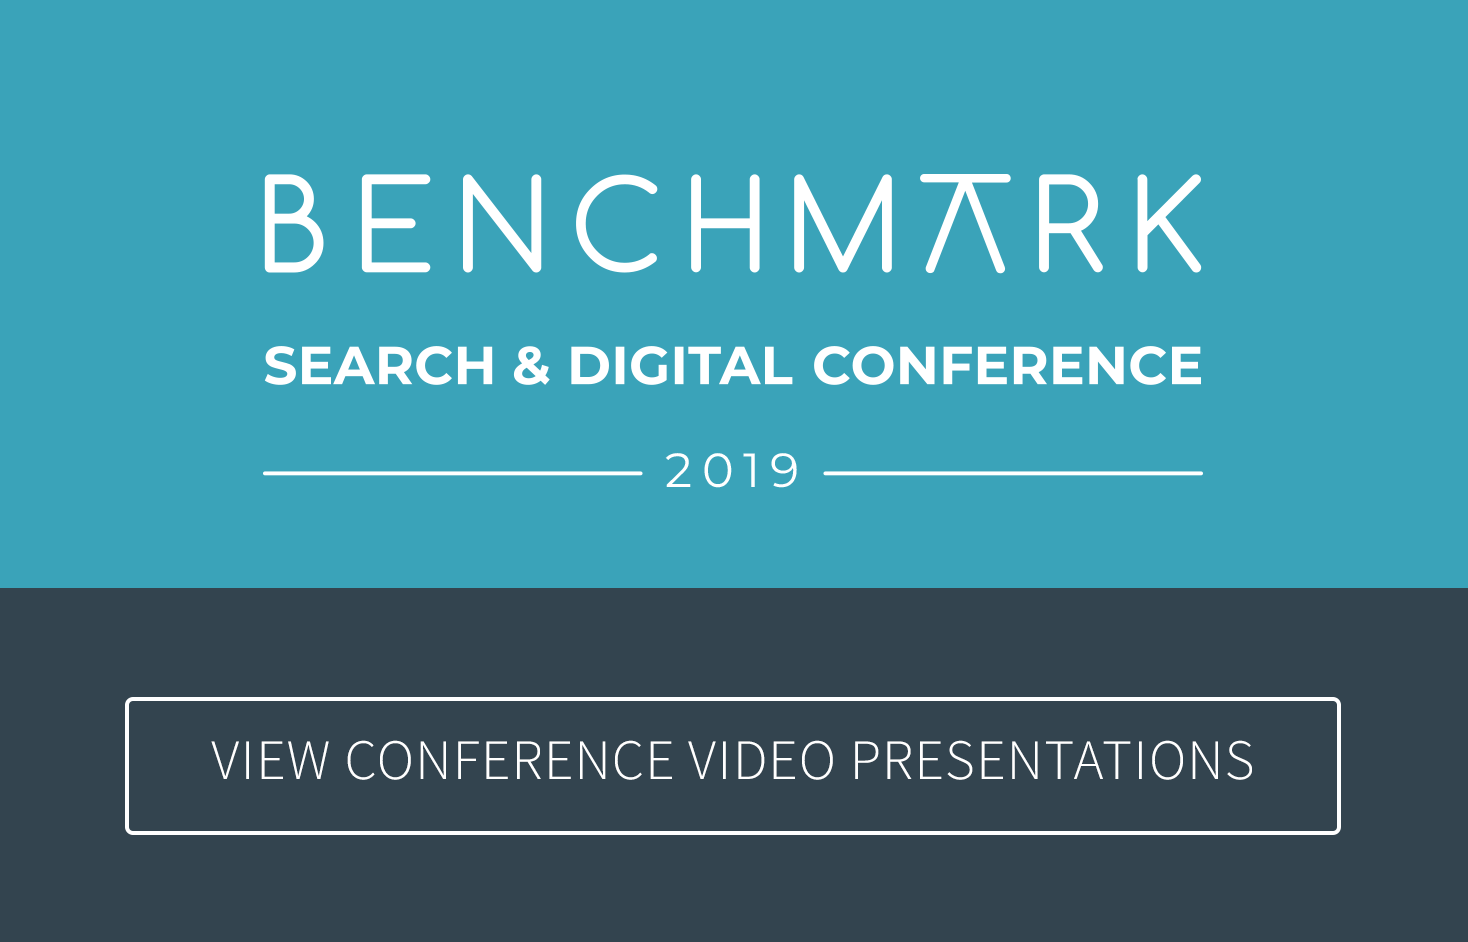 Benchmark 2019 Conference Videos